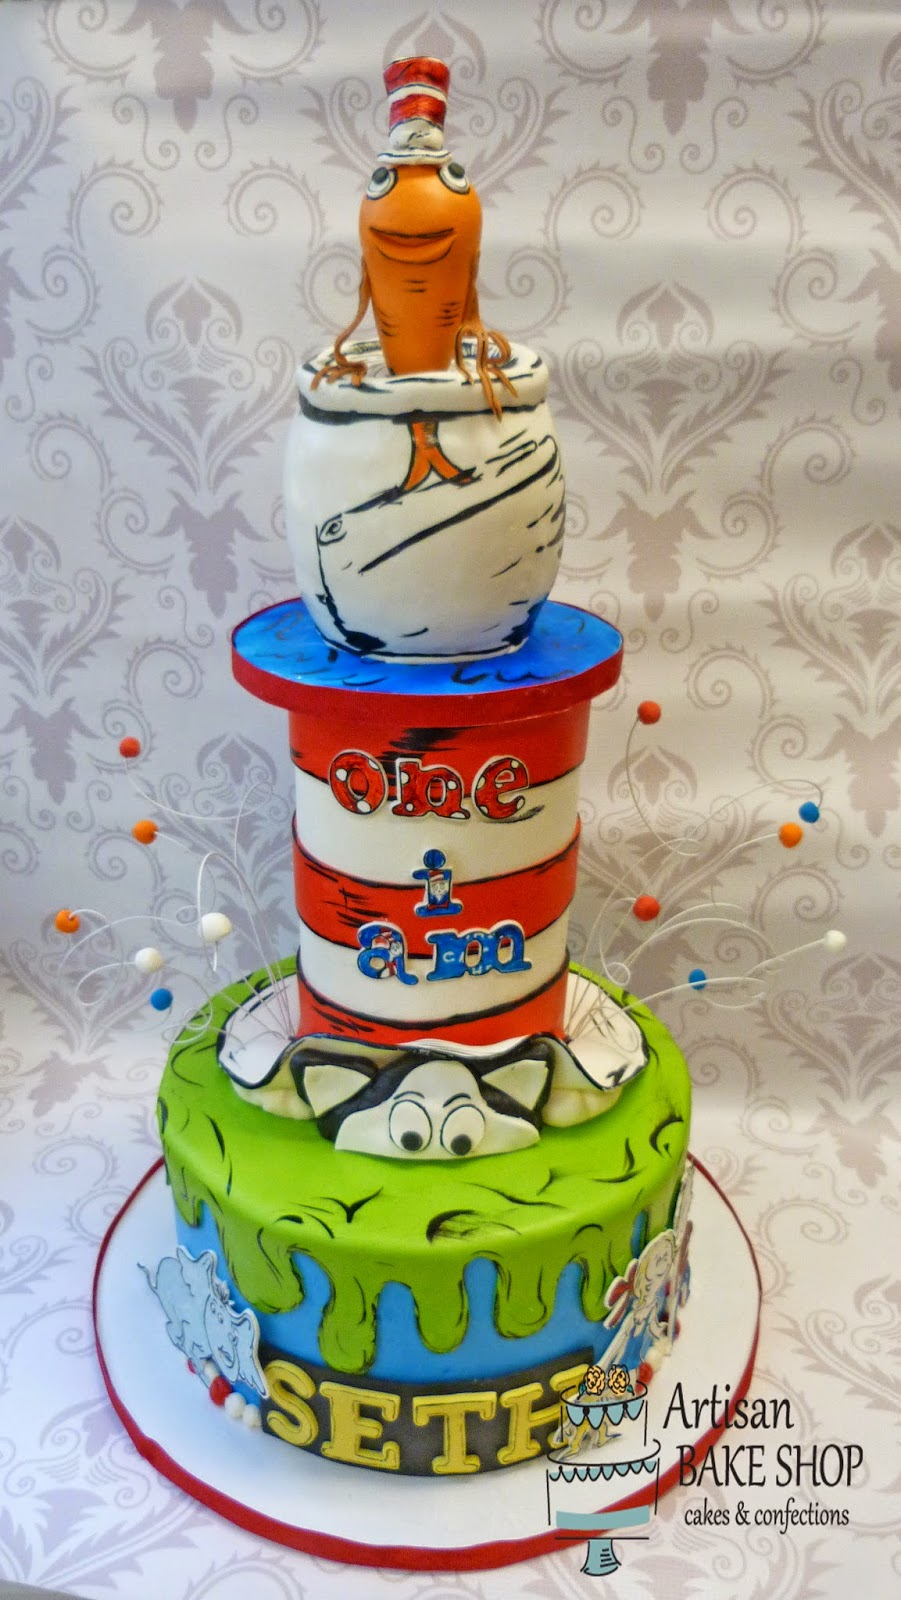 Artisan Bake Shop First Birthday Cakes Dr Seuss And Cat In The Hat